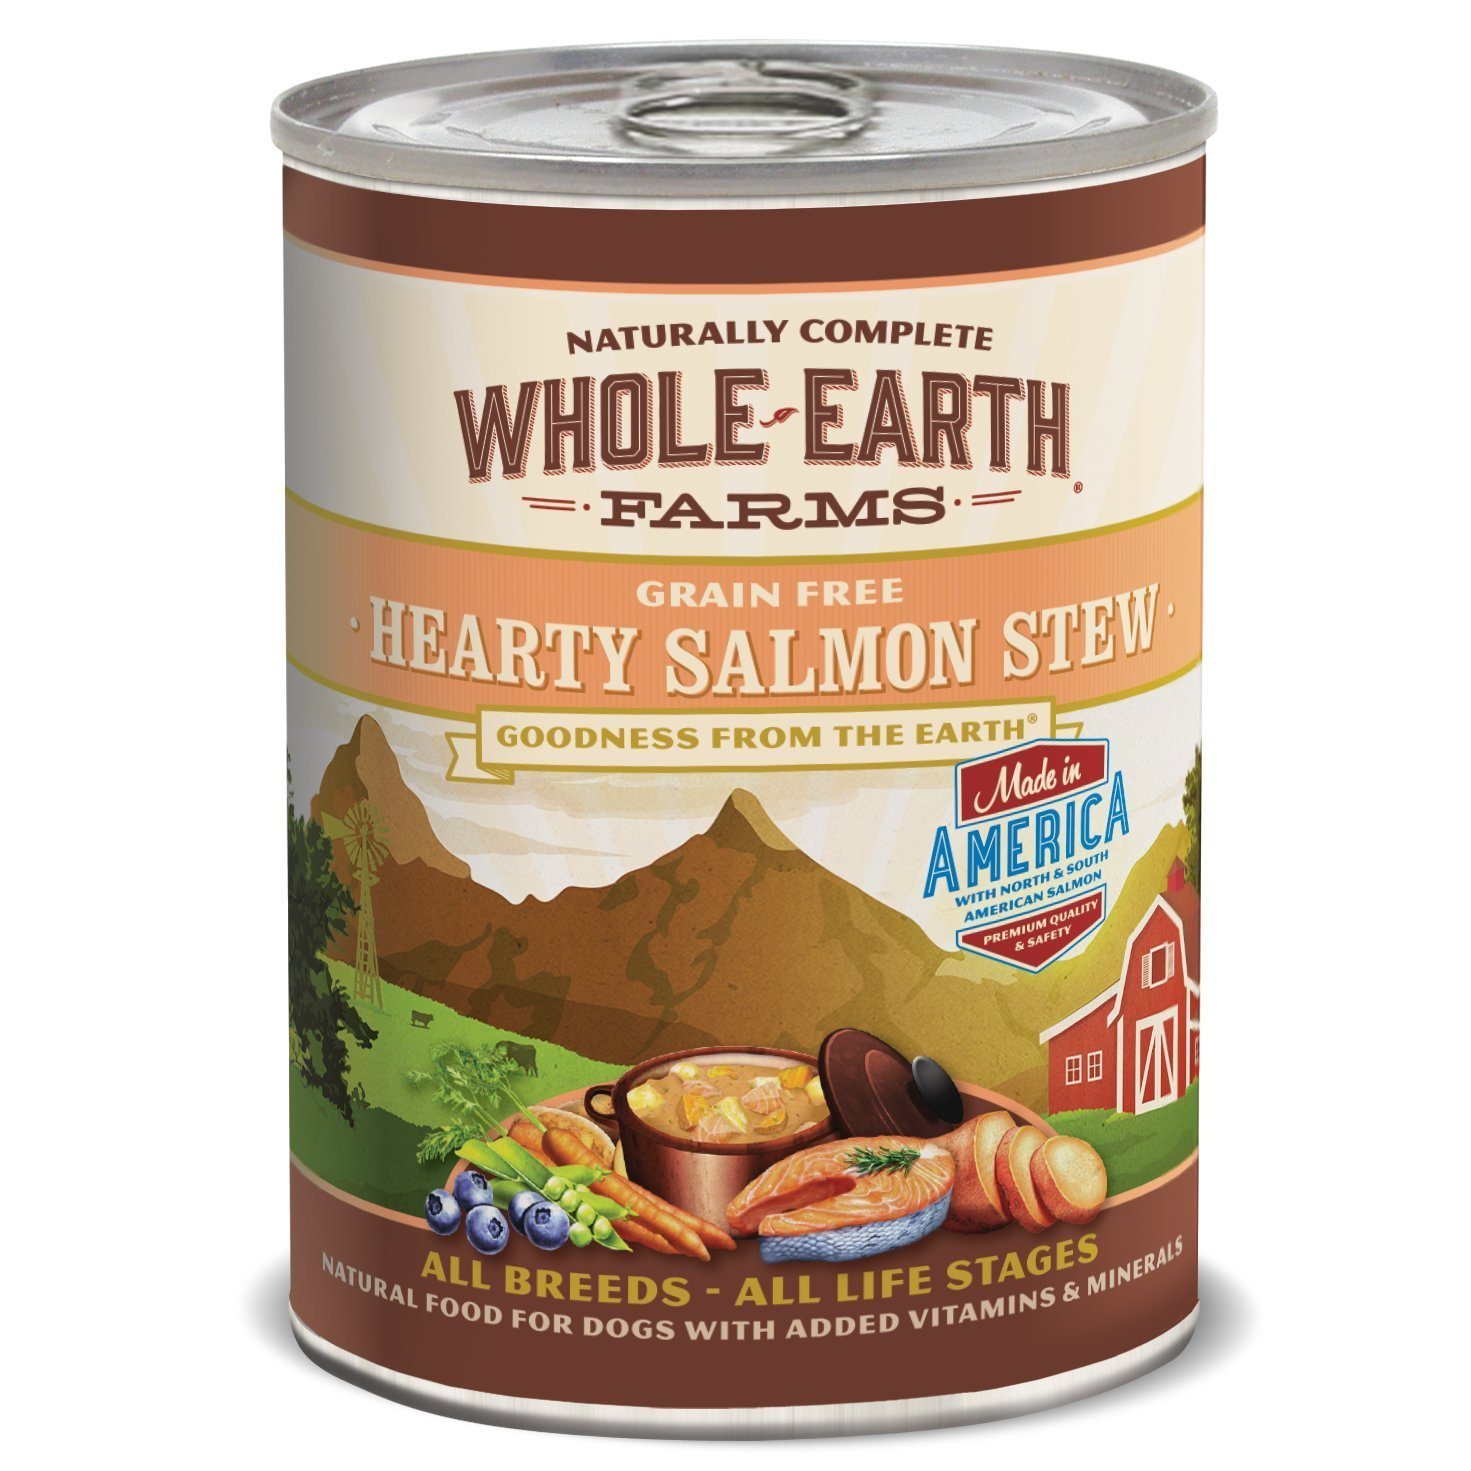 Whole Earth Farms Grain Free Salmon Canned Dog Food